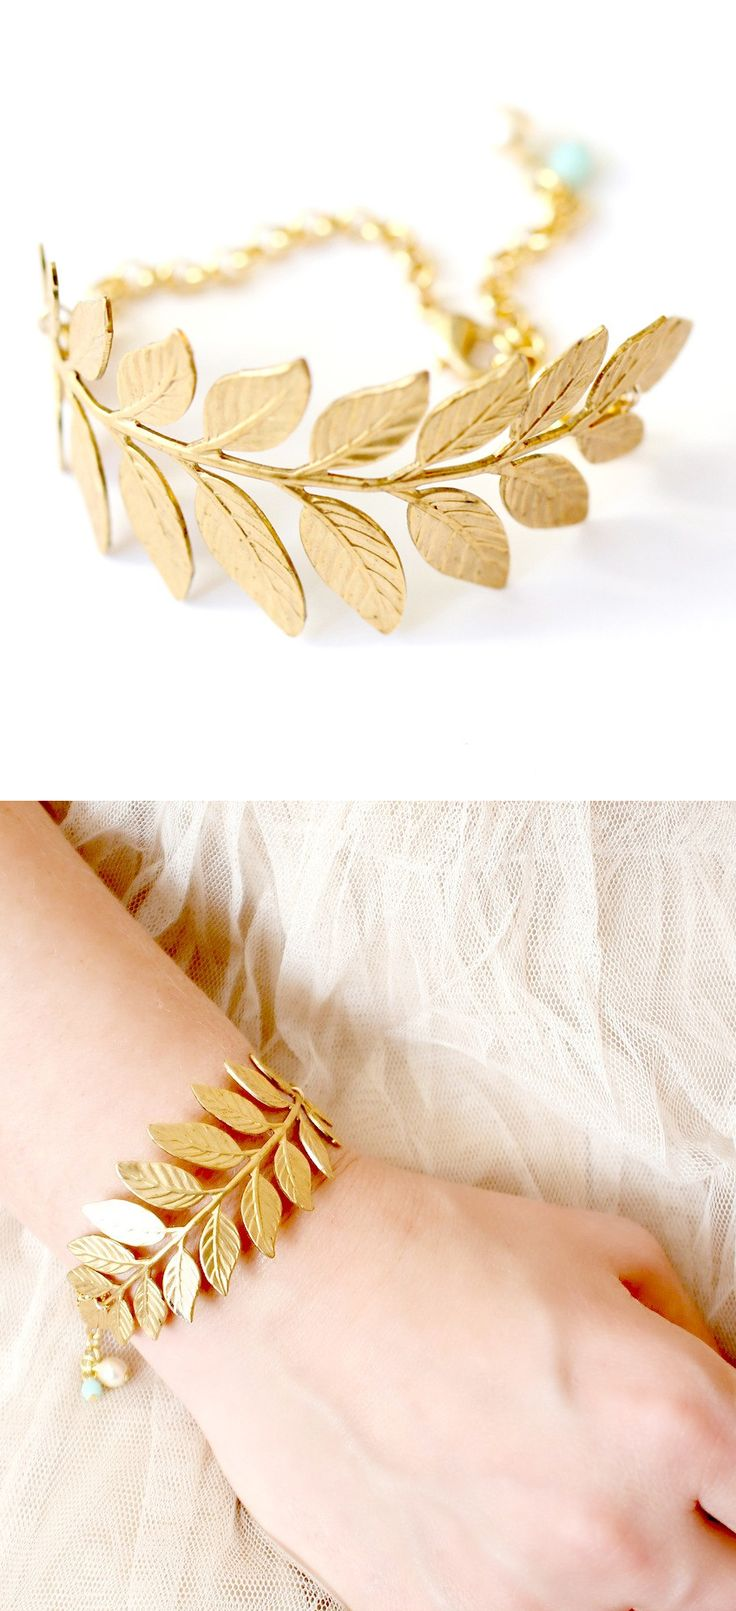 208 best diy jewelry inspiration images on pinterest | bees, jewel